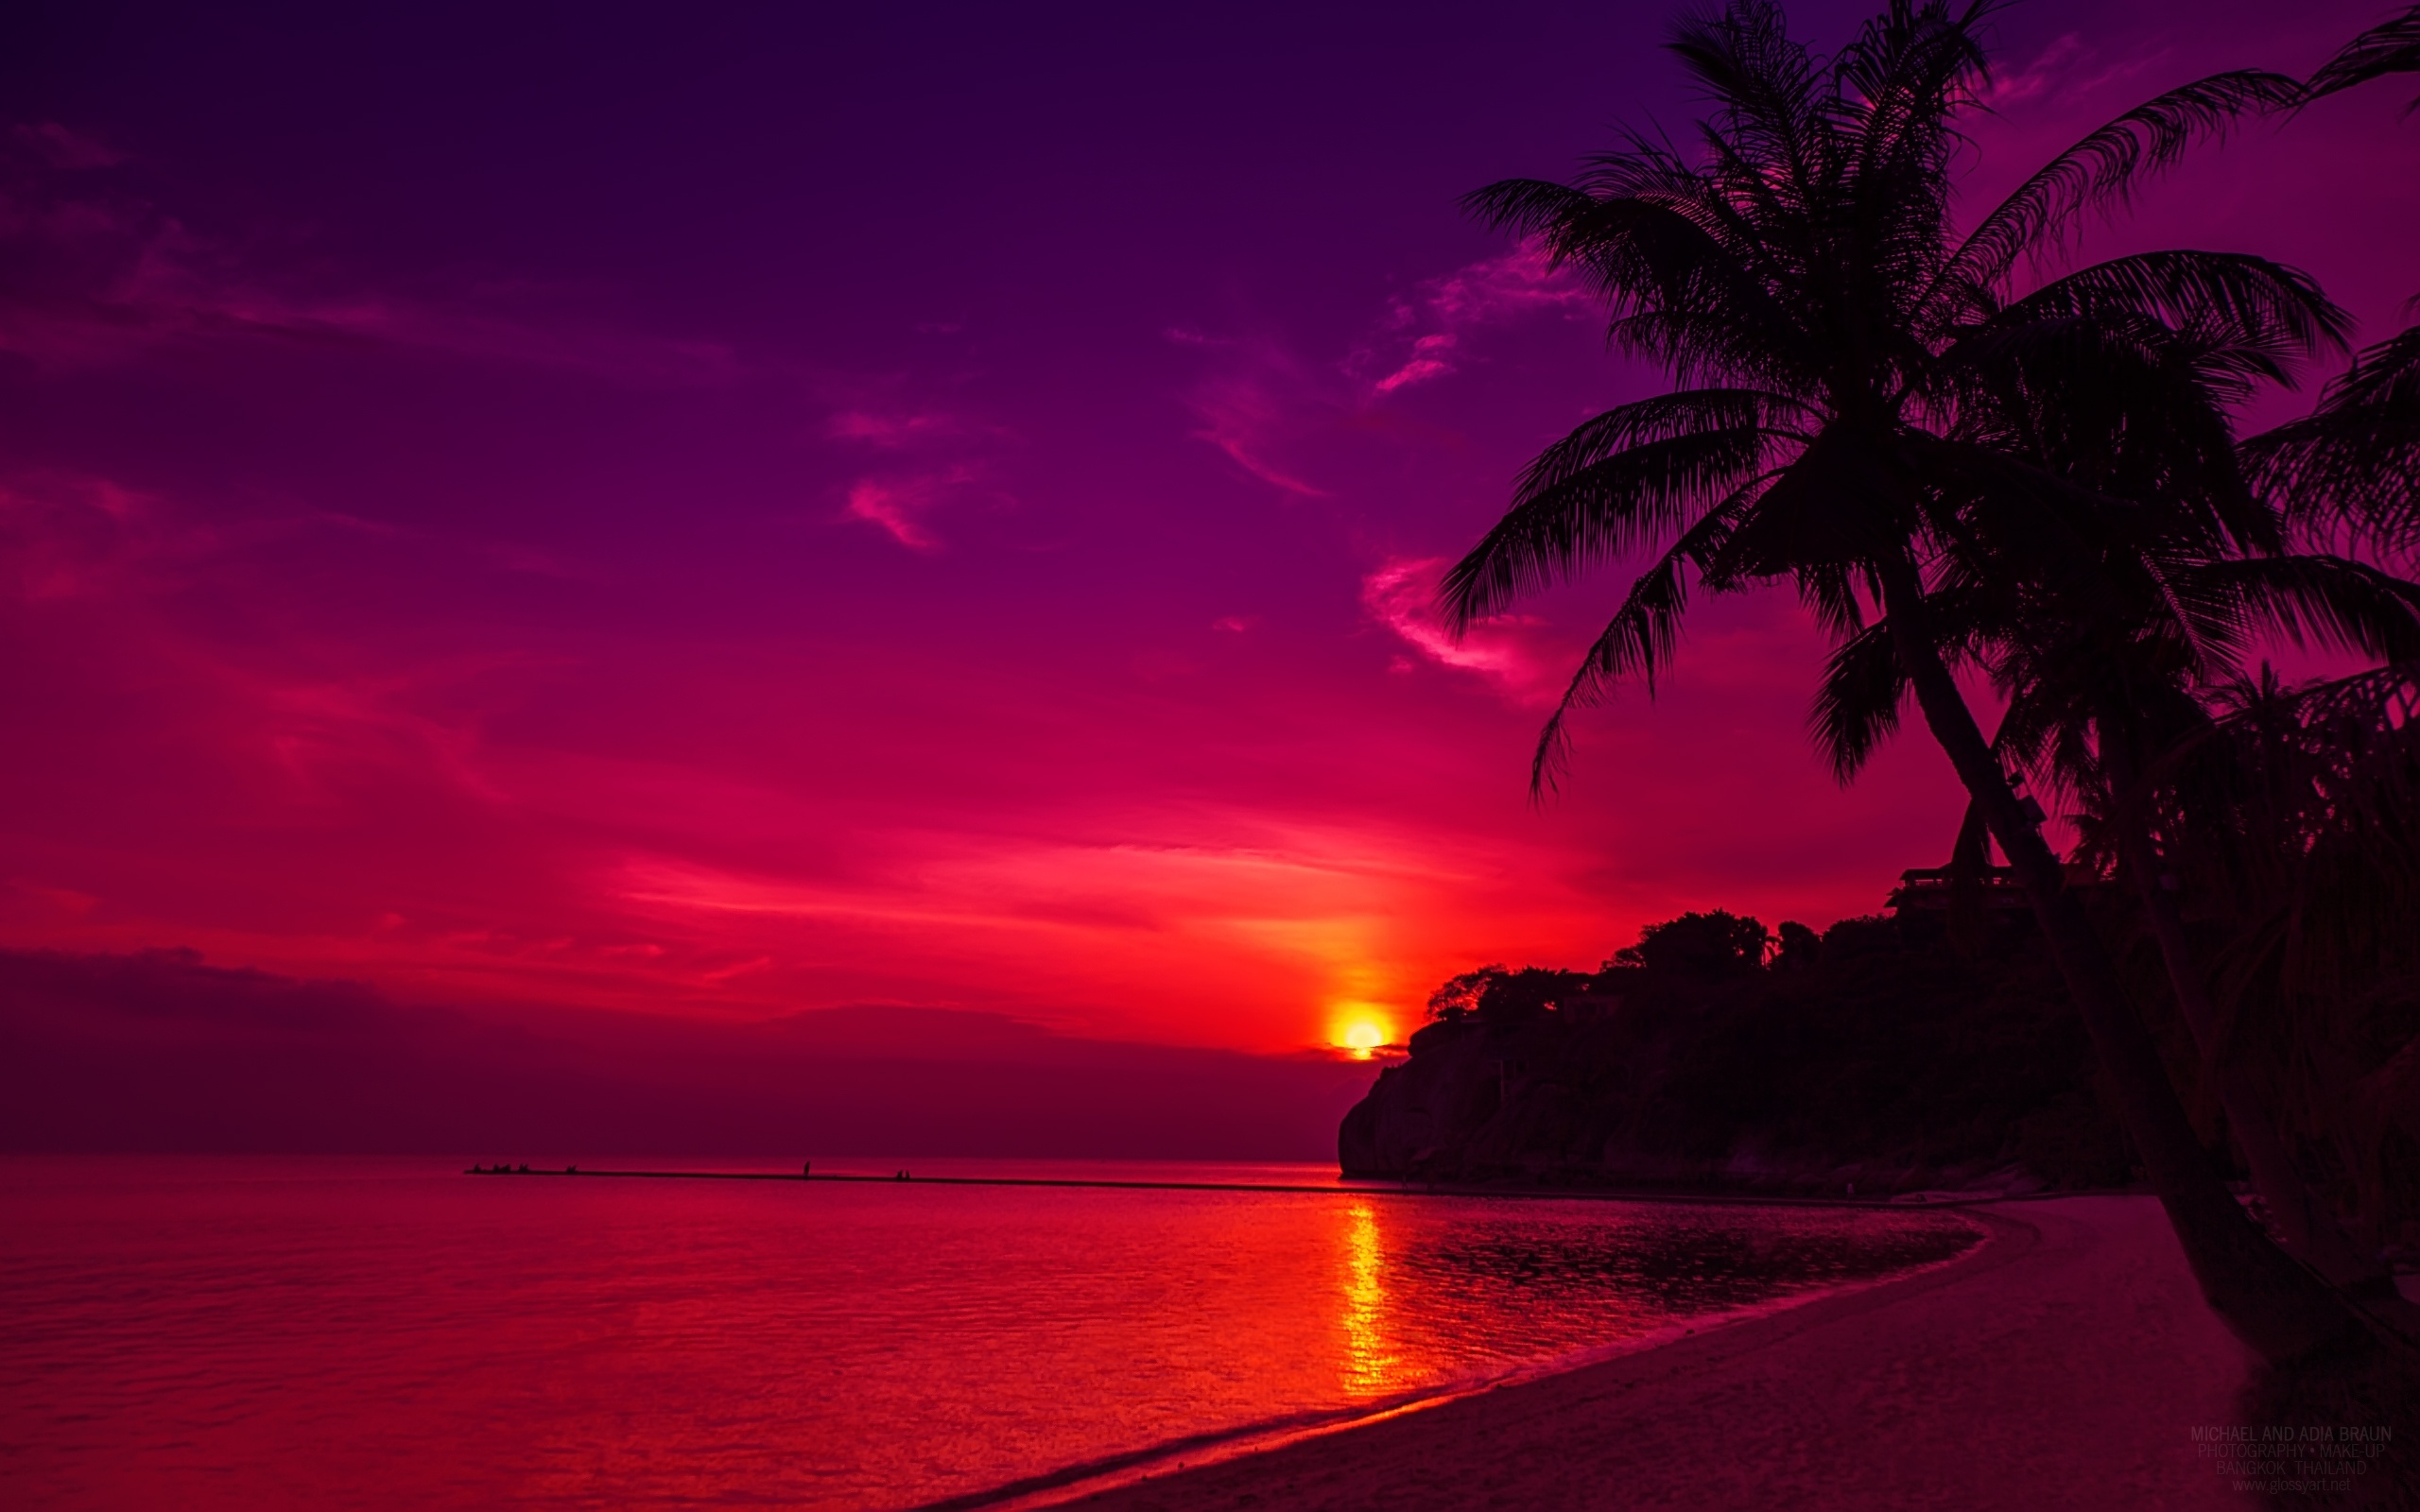 Twilight Island Beach Sunset Wallpapers In Jpg Format For Free